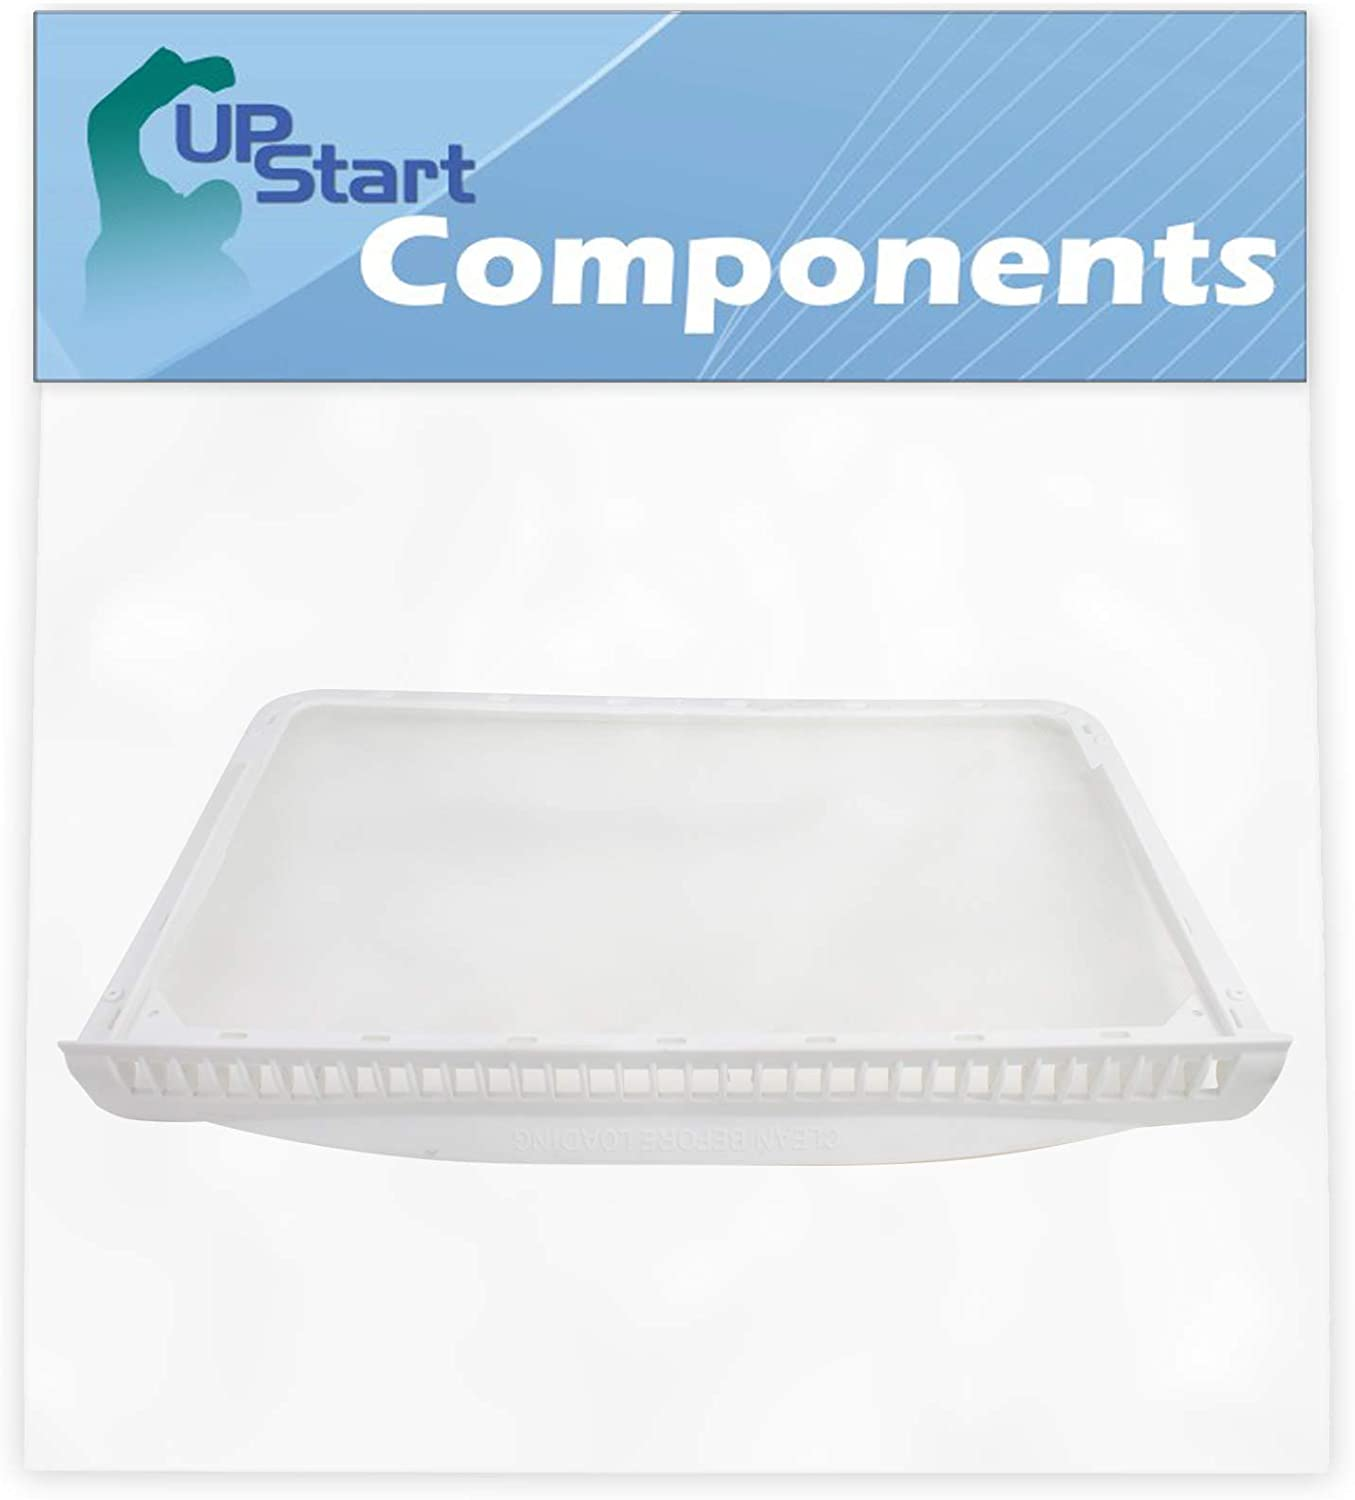 33001808 Dryer Lint Filter Replacement for Maytag MDE5960AYW - Compatible with WP33001808 Lint Screen Trap Catcher